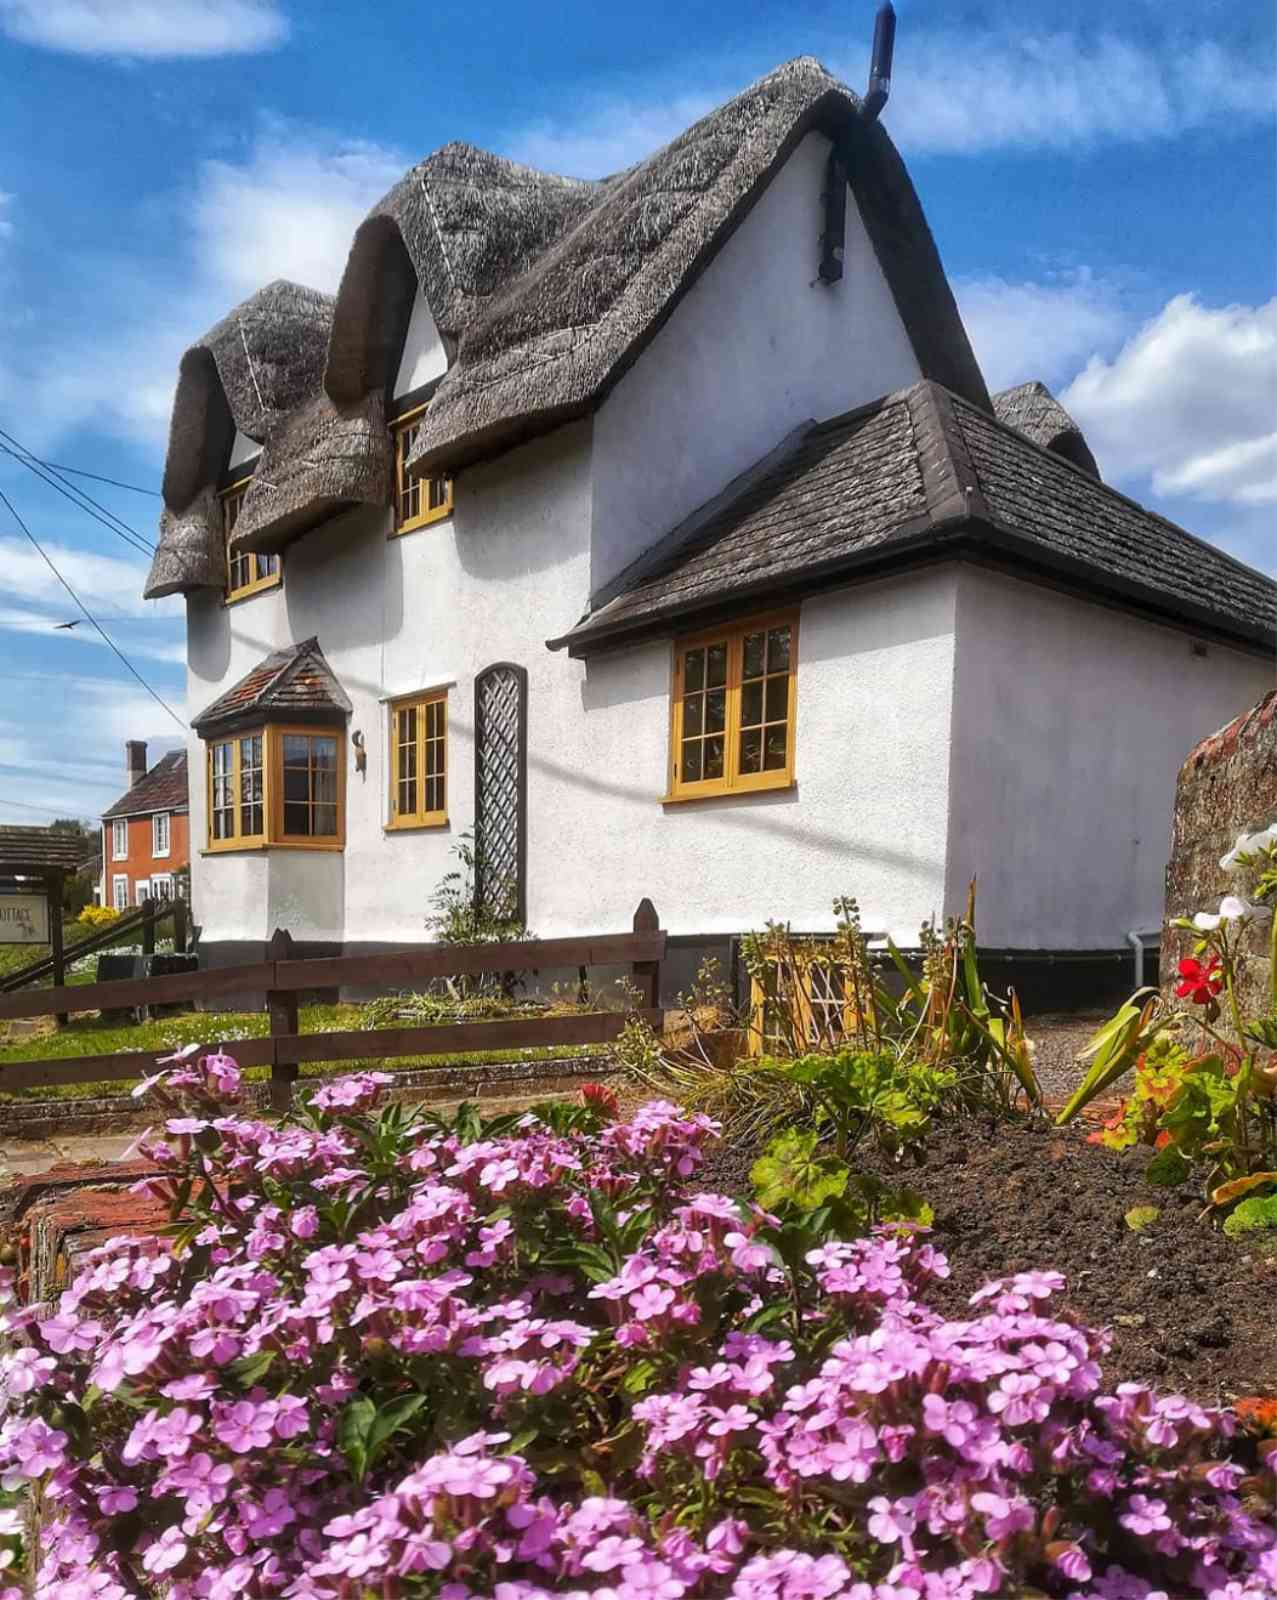 15 English Cottages That Will Make You Leave the City